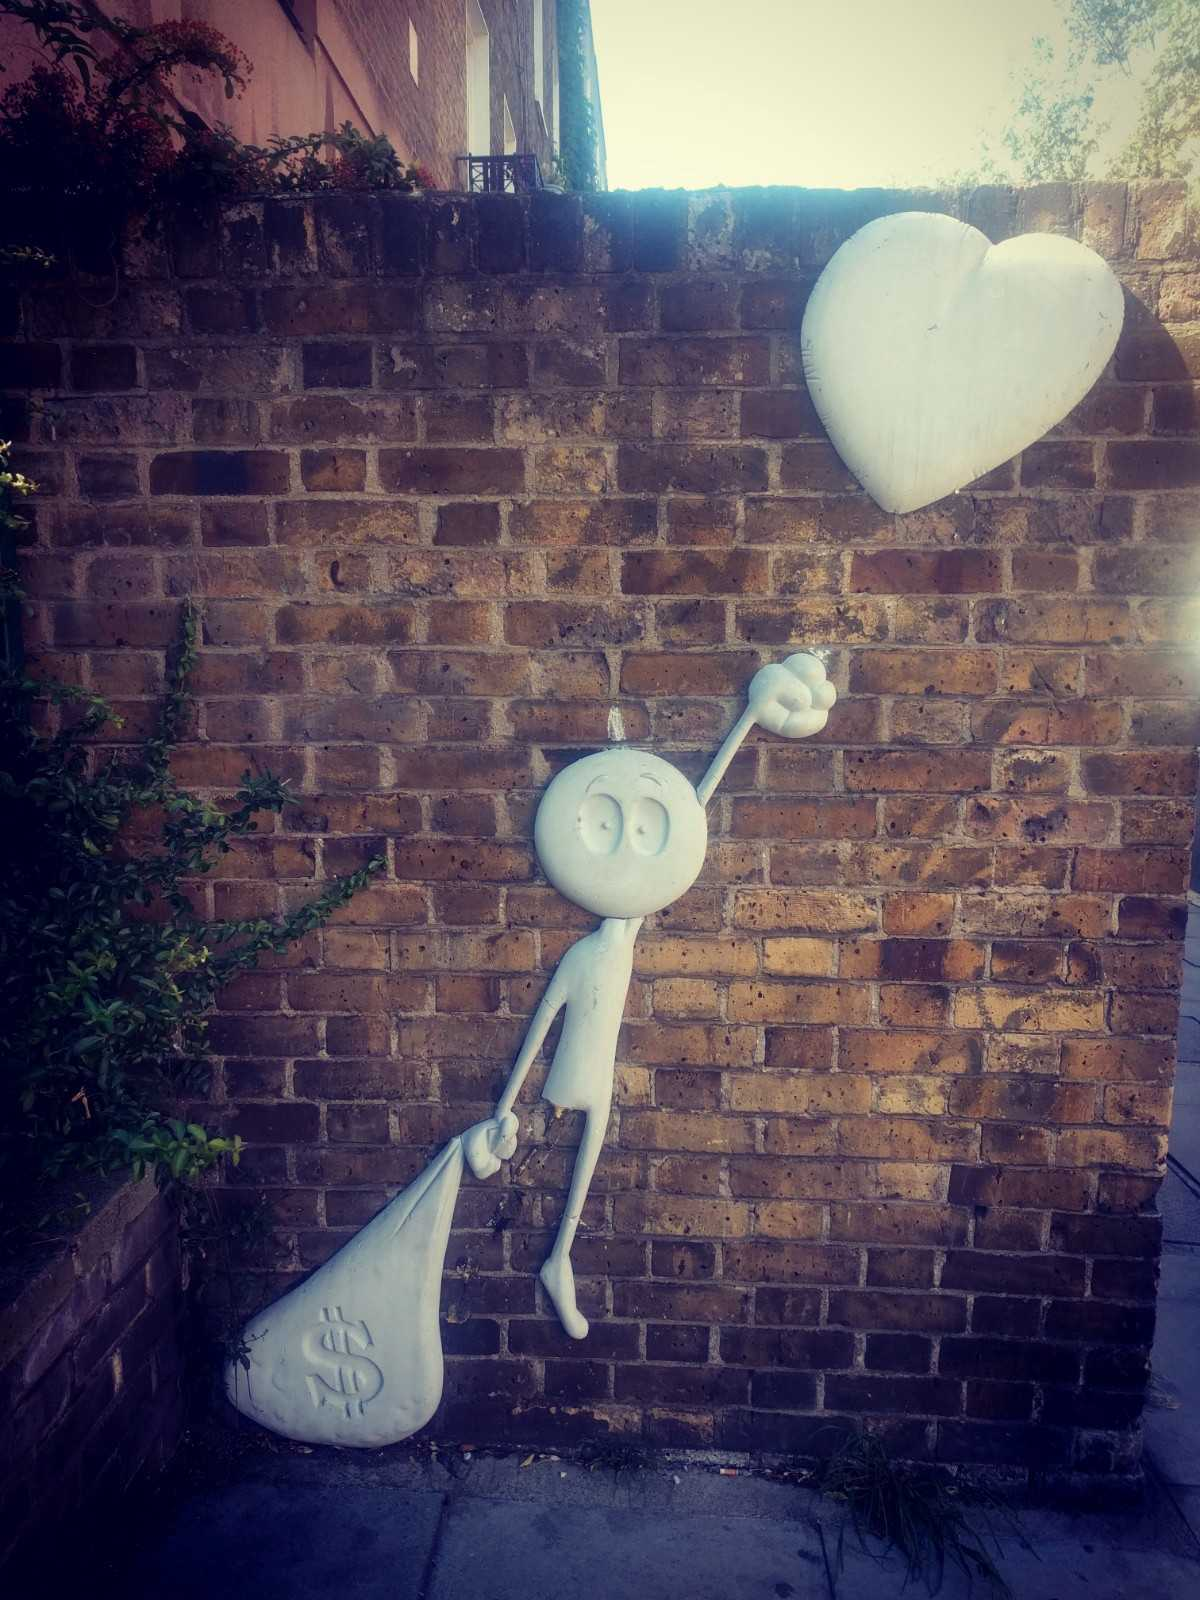 Graffiti of man trying to float away on love heart but weighed down by bag of money